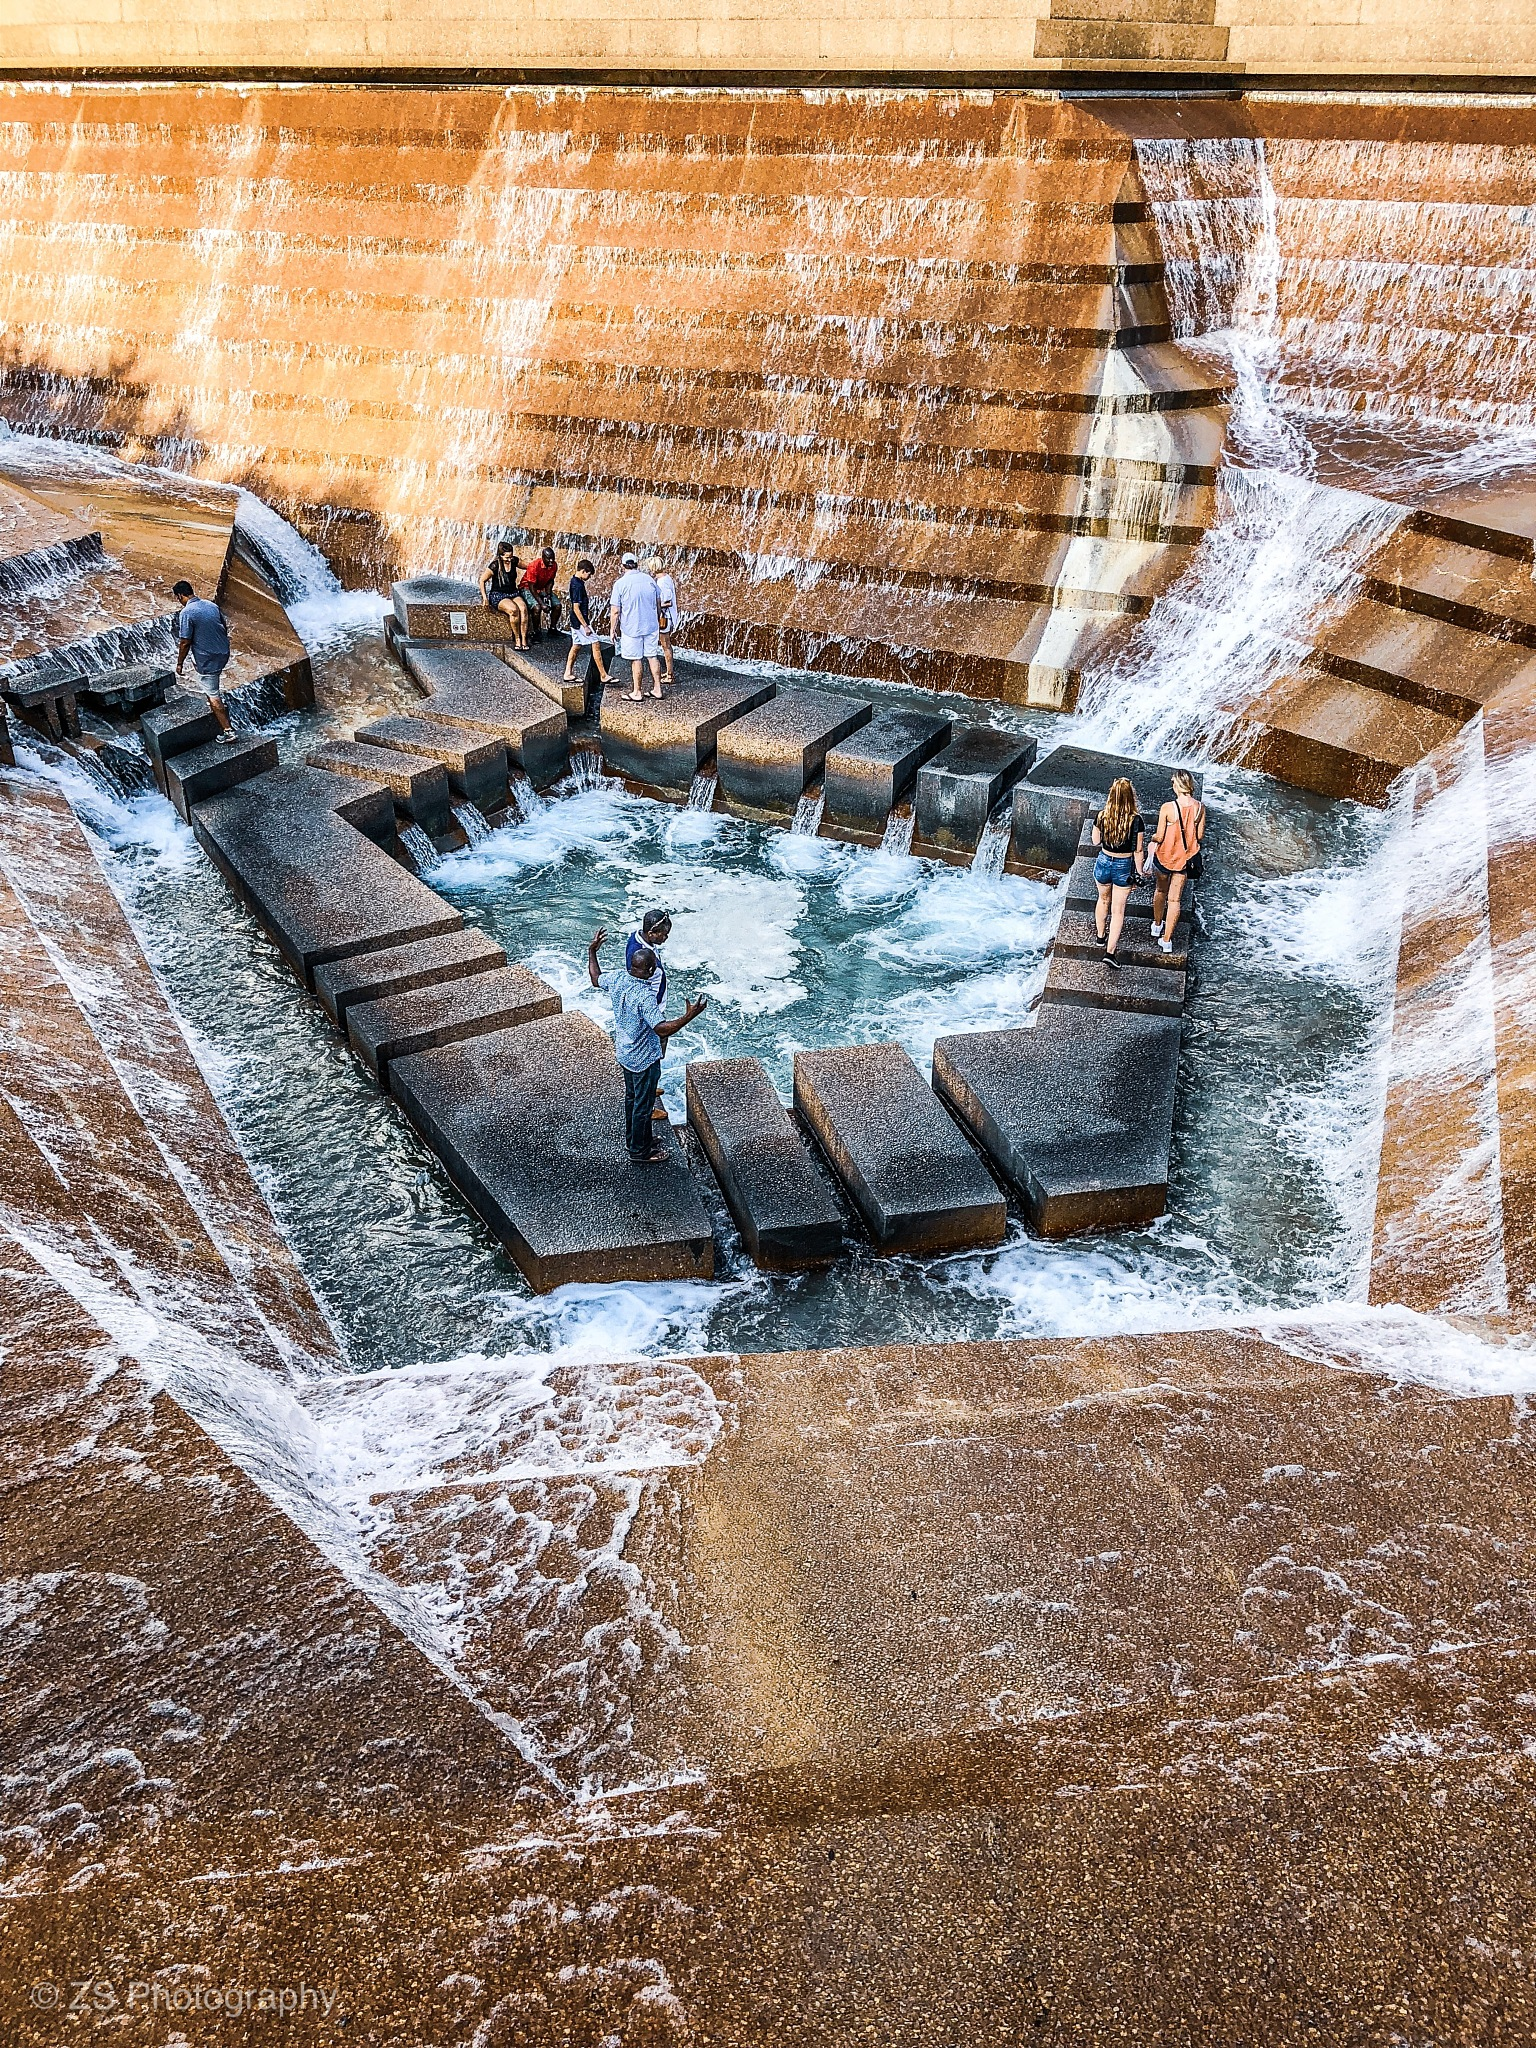 Fort Worth Water Gardens by ZS Photography